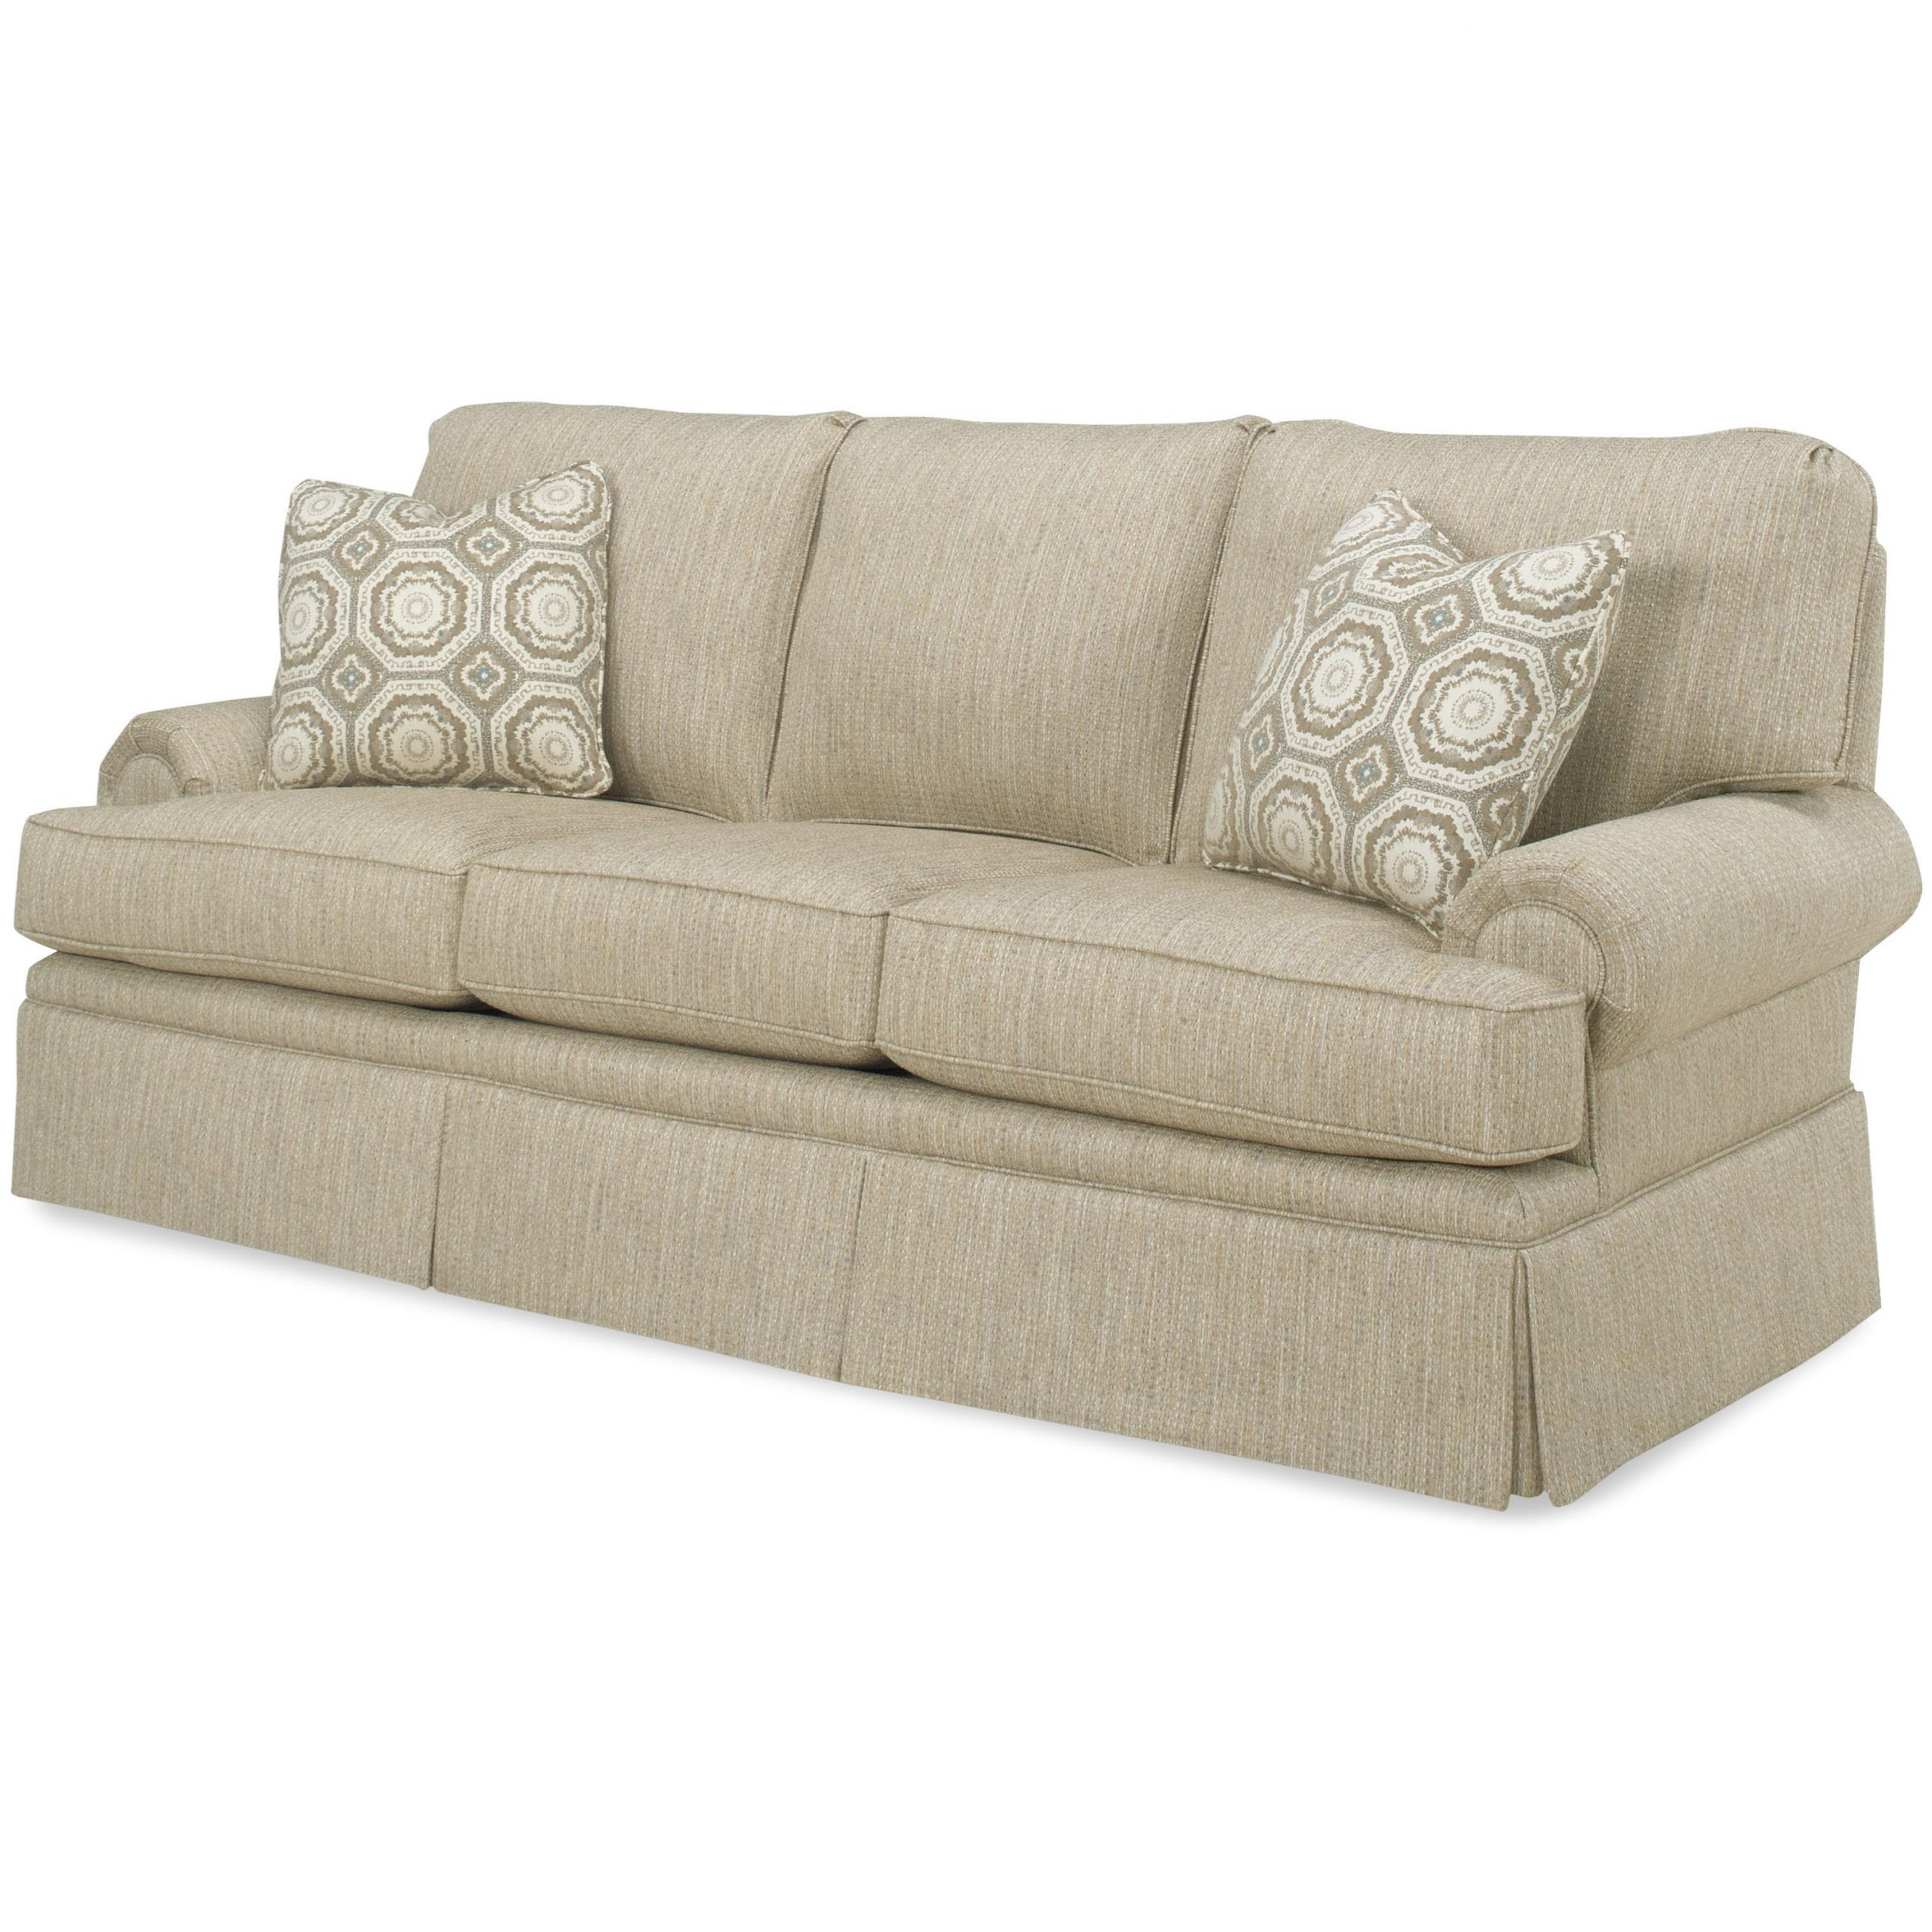 Temple Furniture Winston Sofa With Skirt (View 5 of 25)